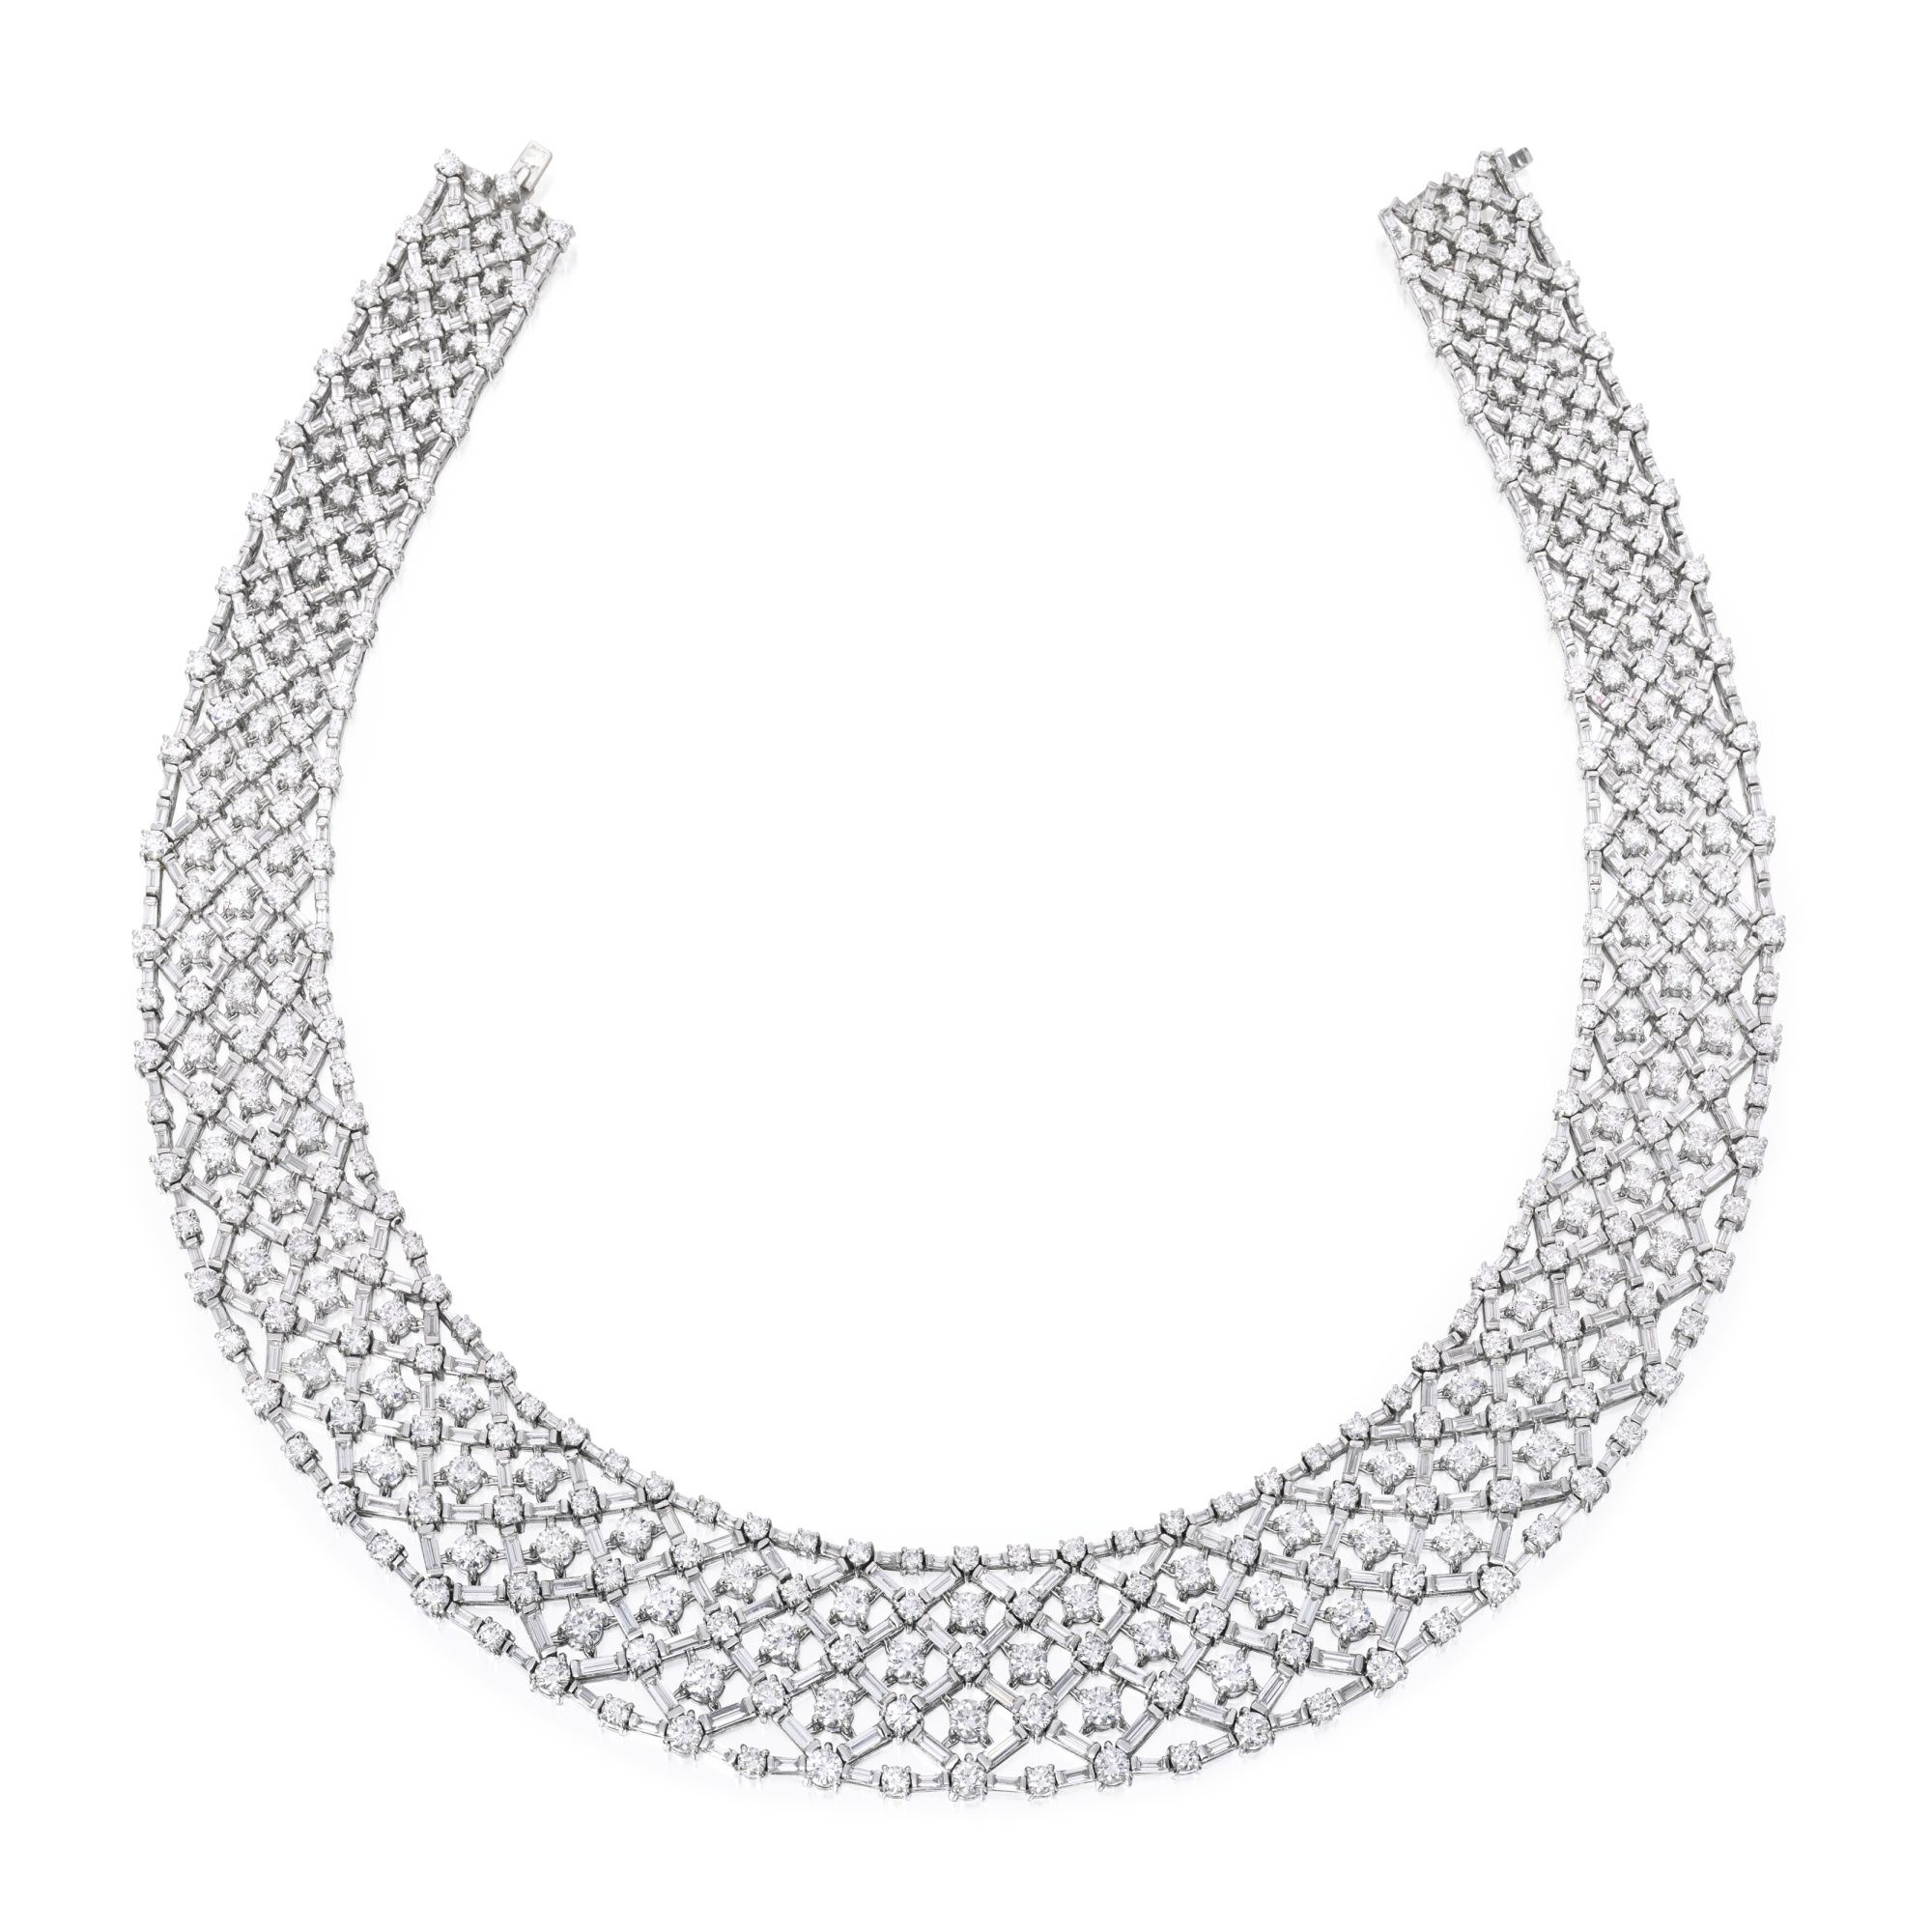 llc bar by baguette products necklace diamond jewelry atheria necklaces